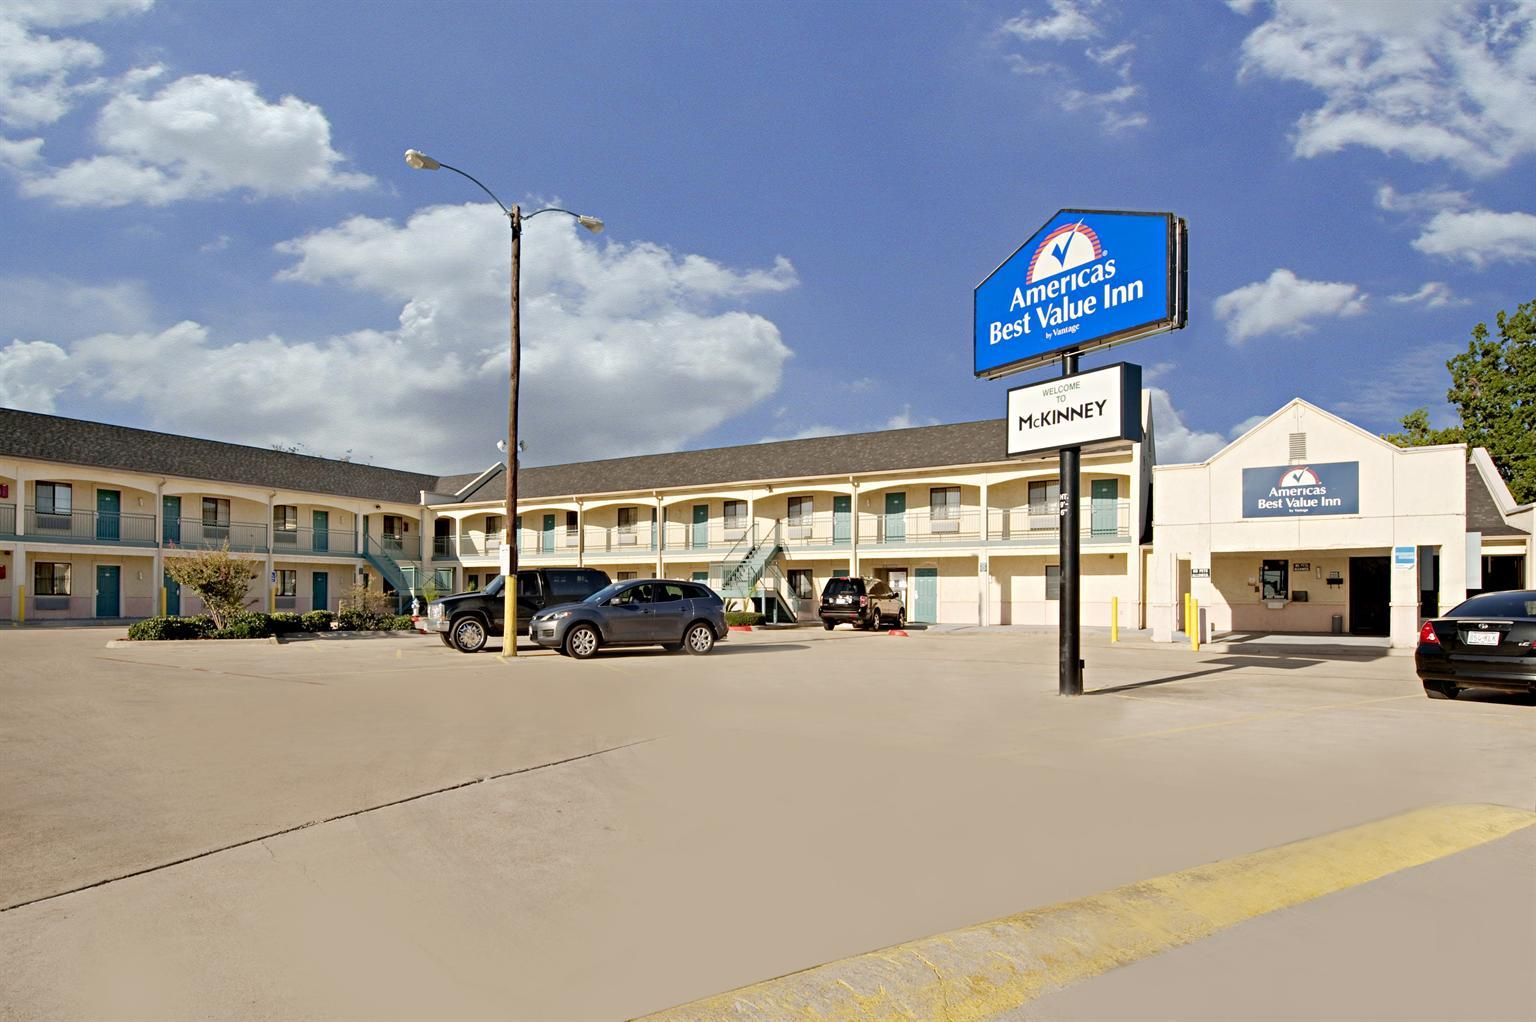 Restaurants near Americas Best Value Inn Page, Page on TripAdvisor: Find traveler reviews and candid photos of dining near Americas Best Value Inn Page in Page, Arizona.